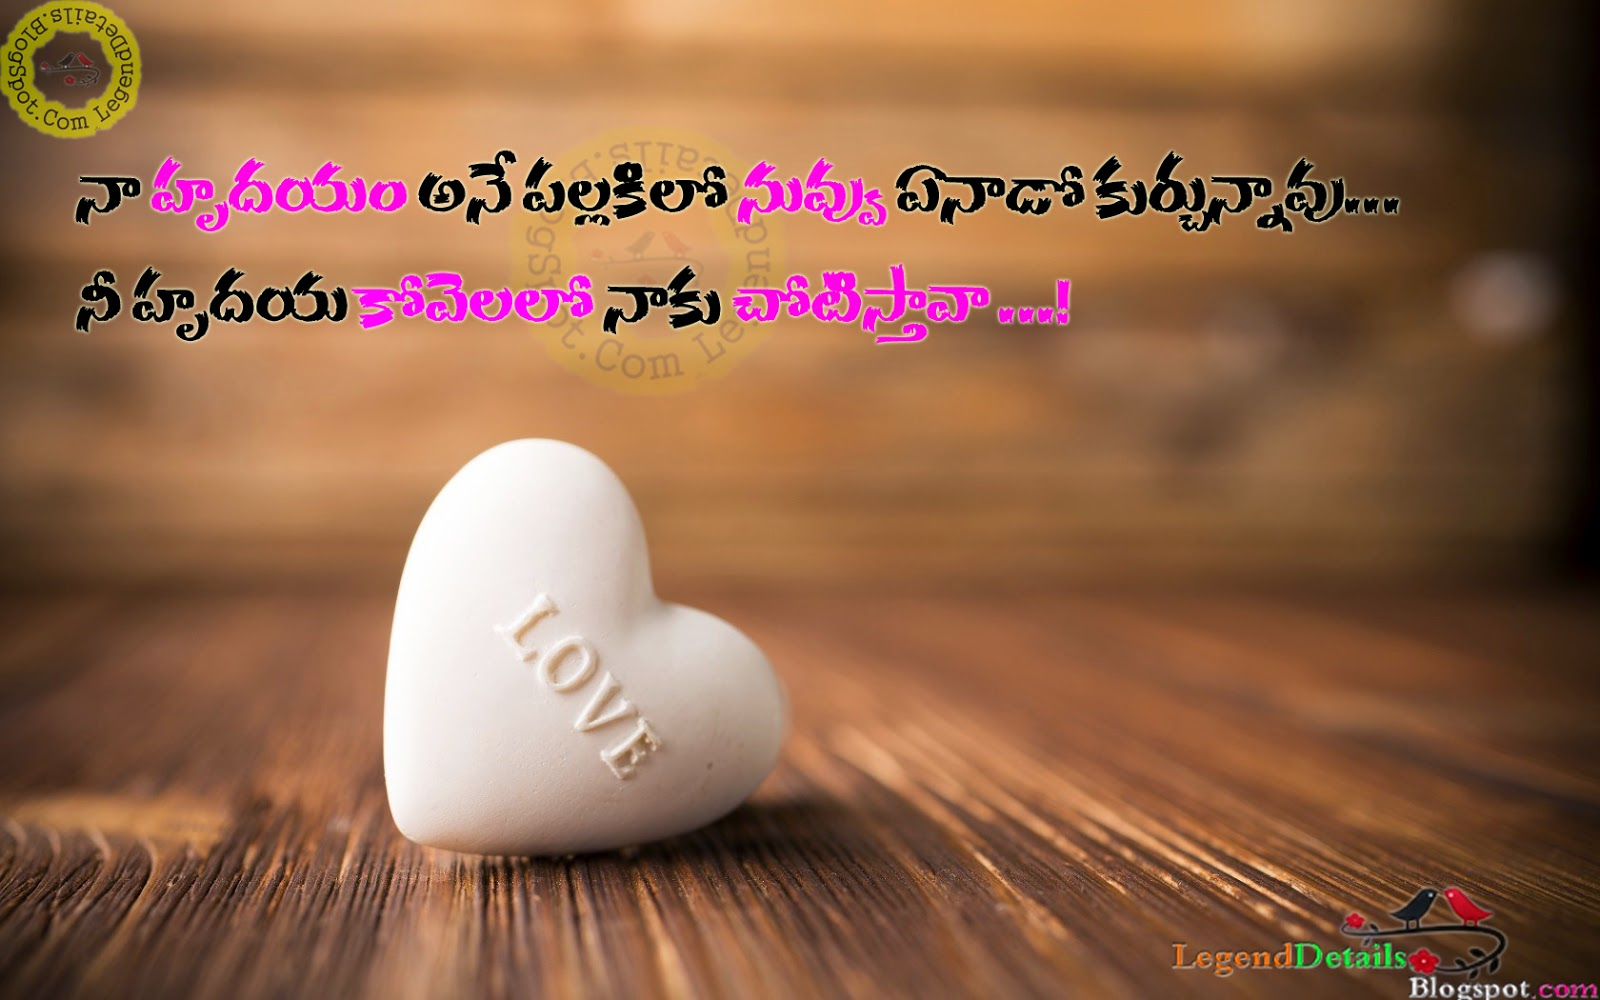 Telugu Love Quotes Amazing Telugu Love Sms With Hd Images  Heart Touching Telugu Love Sms